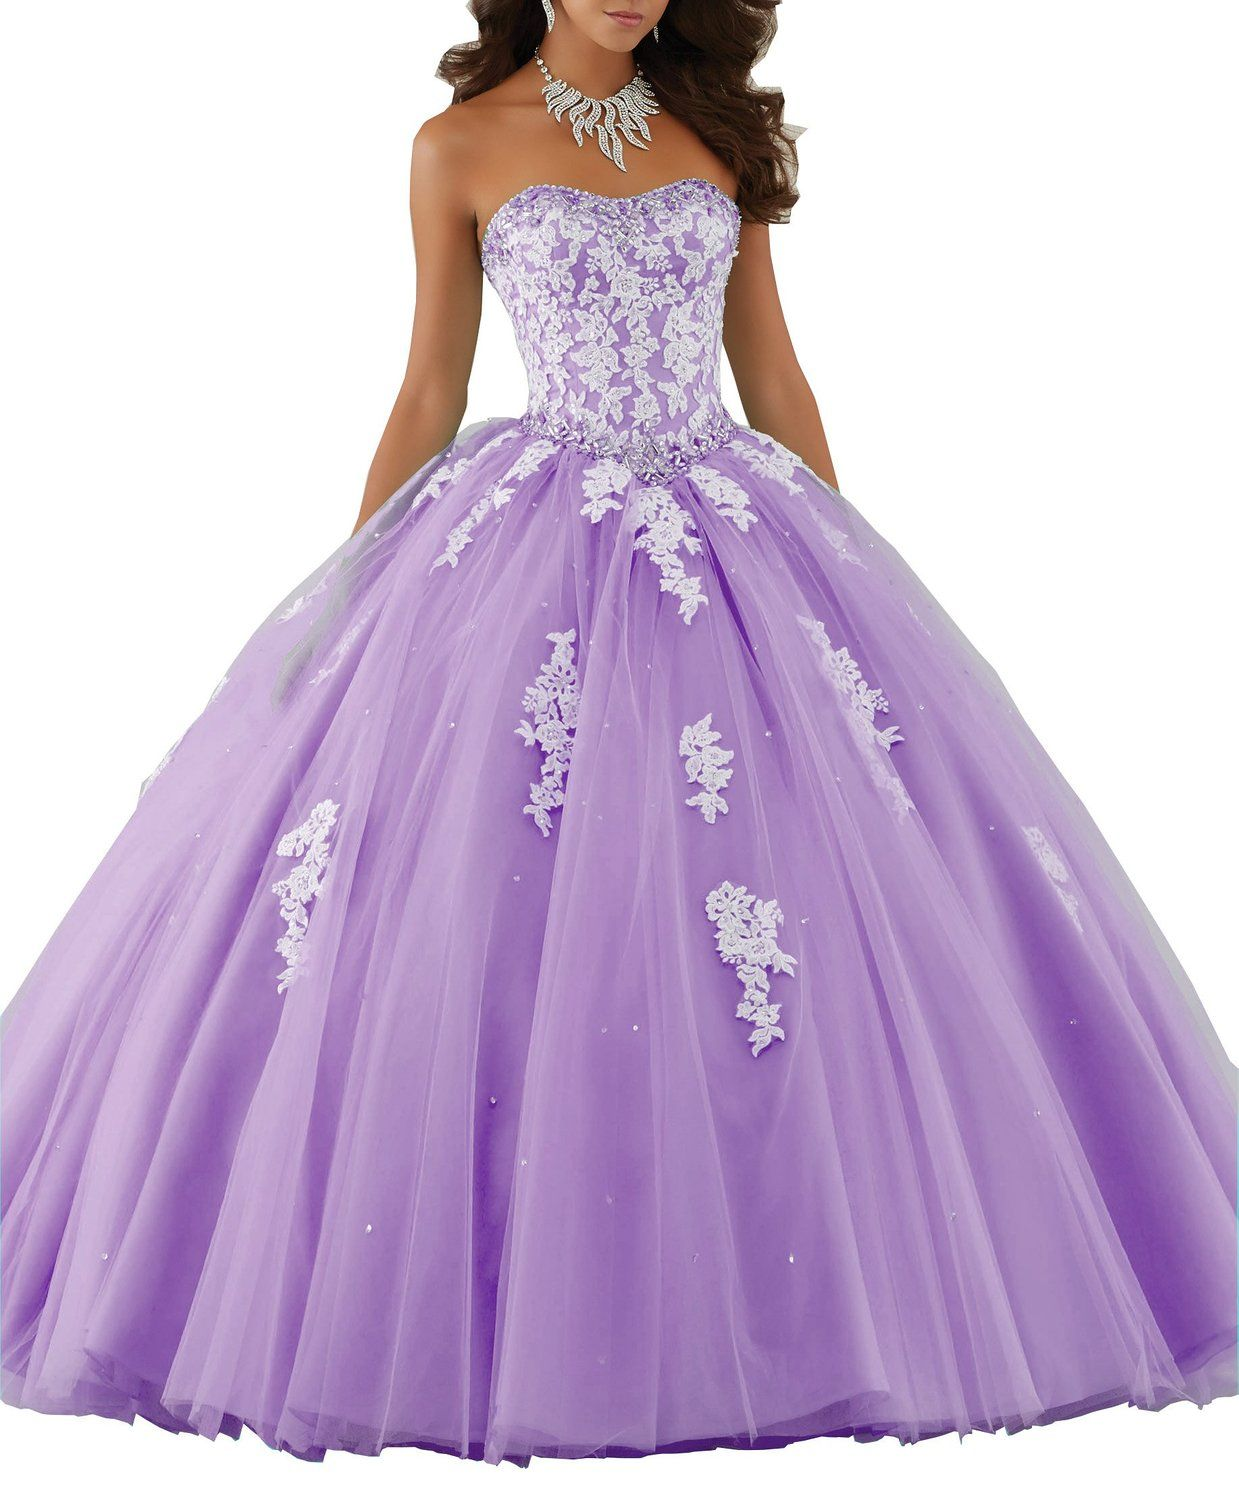 Elley Women\'s Lace Applique Floor Length Tulle Ball Gown Quinceanera ...